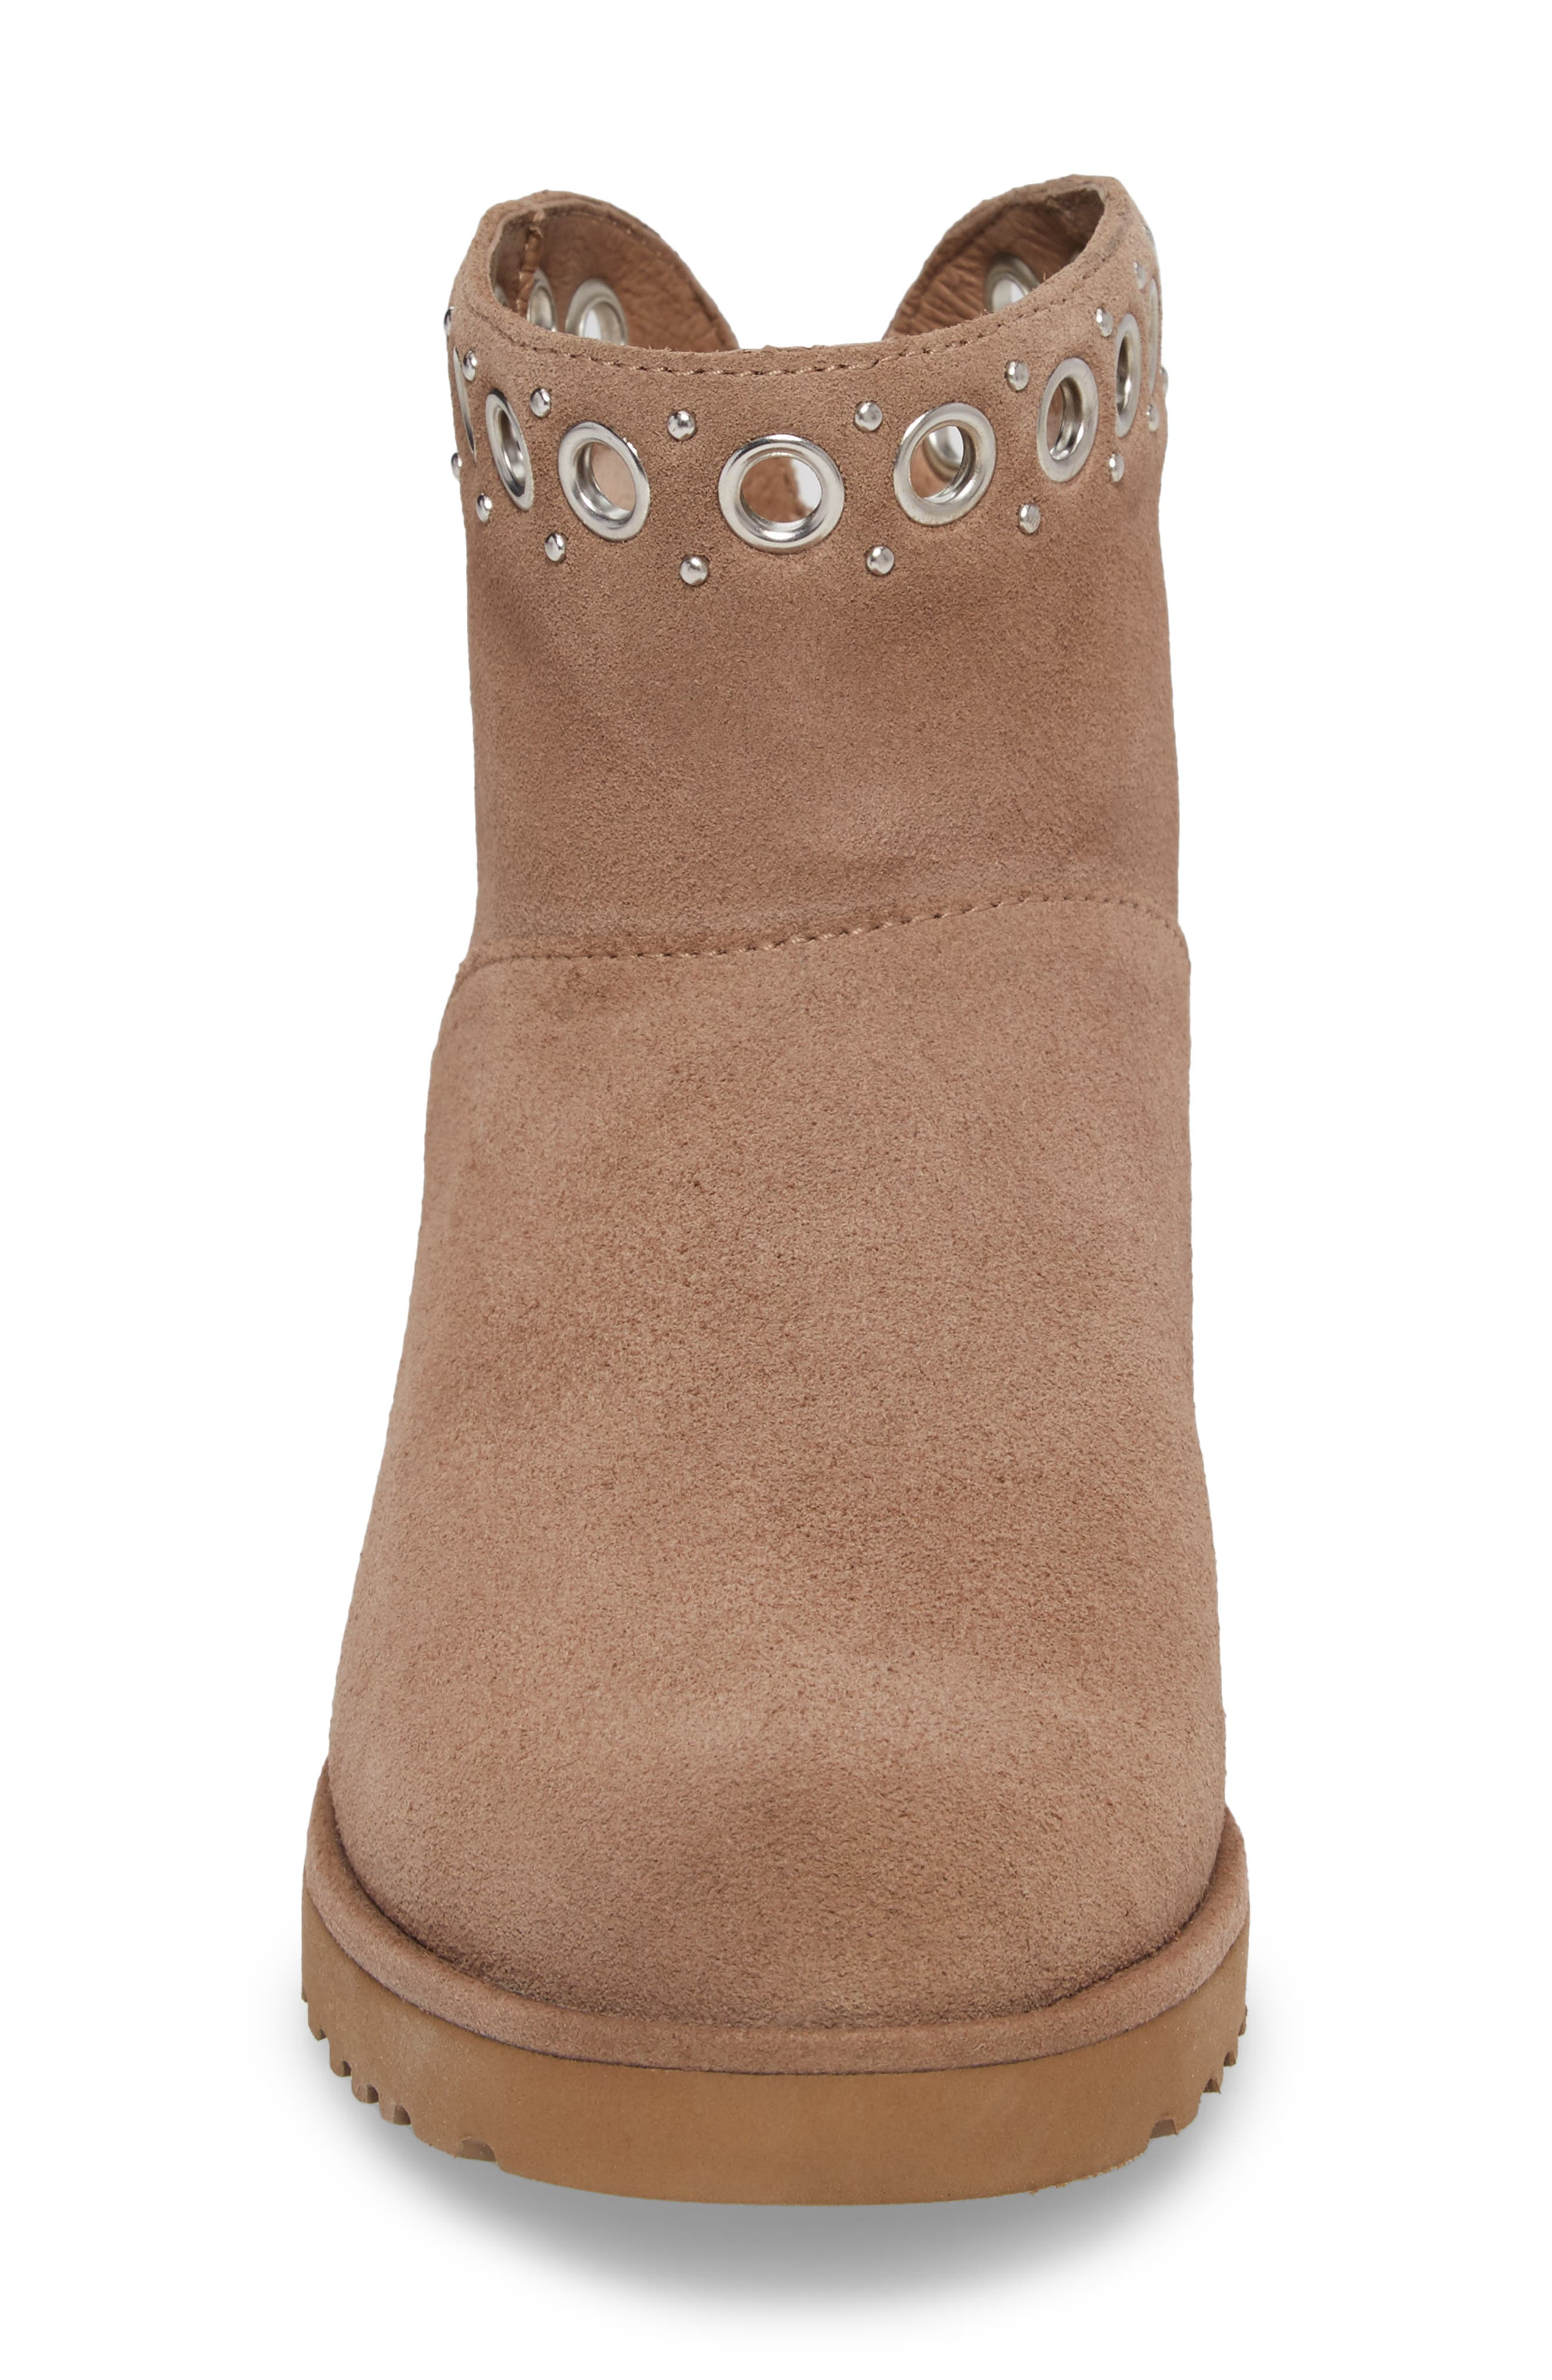 Riley Grommet Wedge Boot,                             Alternate thumbnail 4, color,                             Fawn Suede